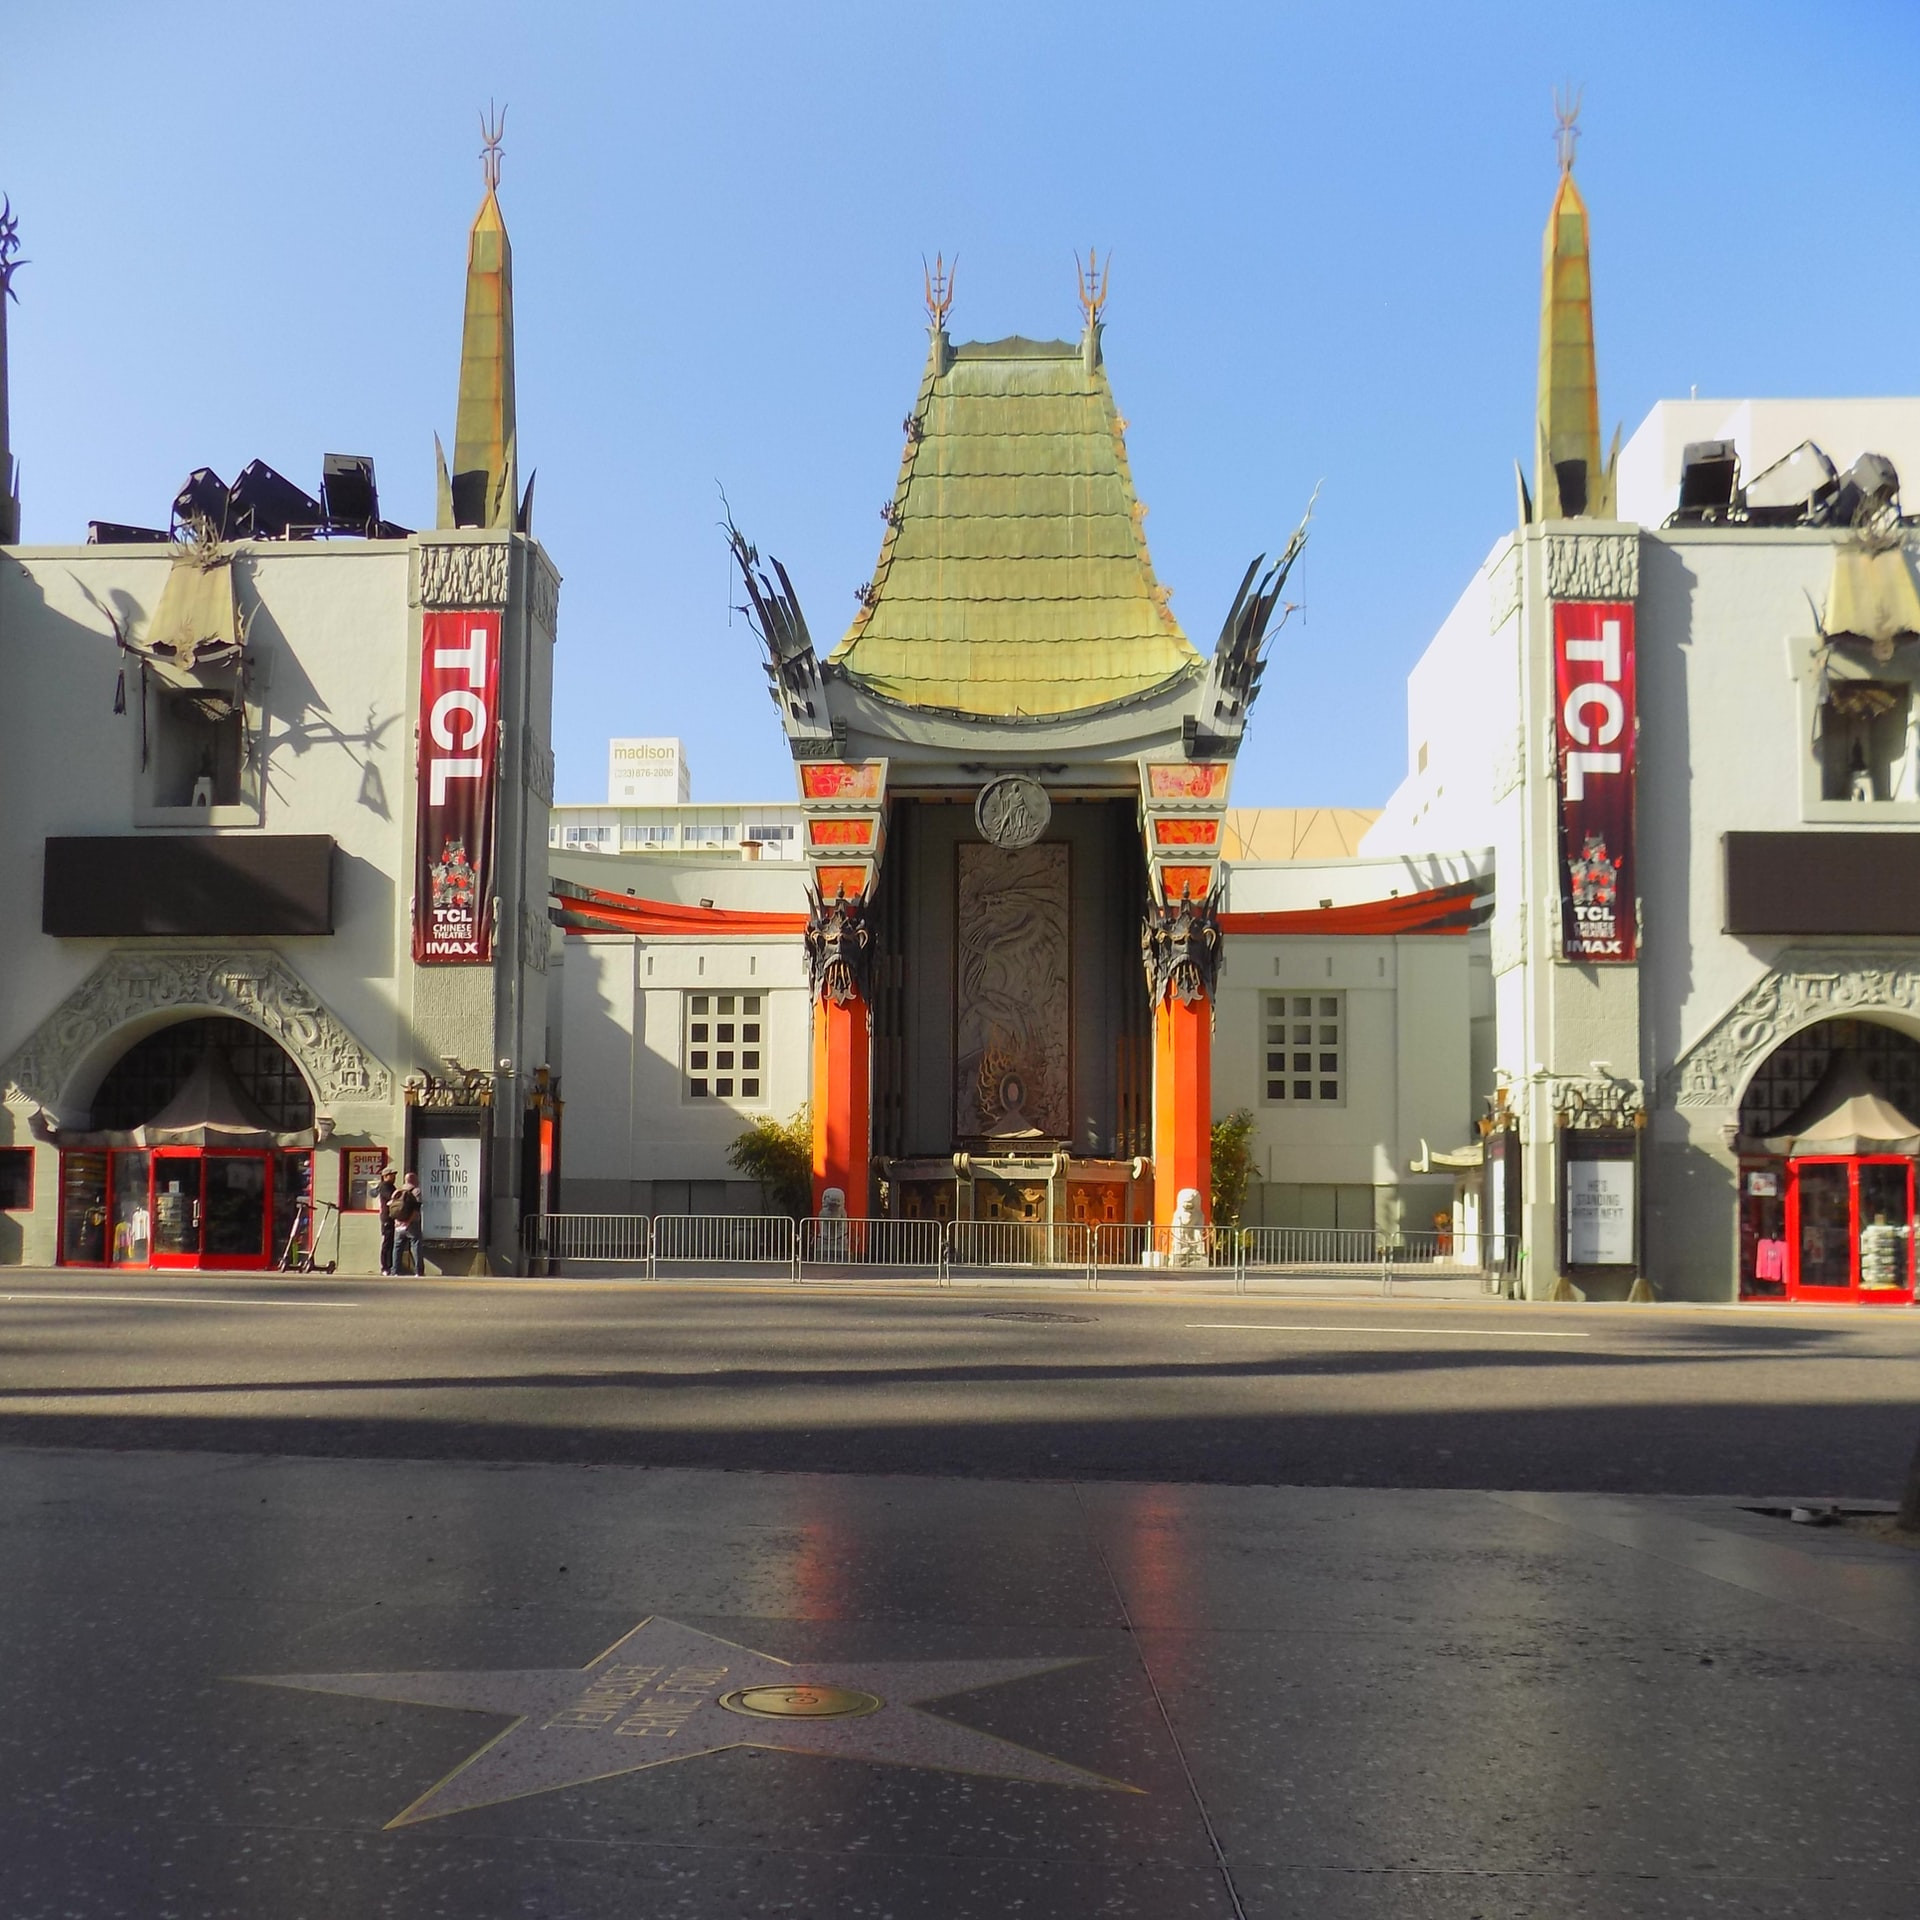 Grauman's Chinese Theatre in Hollywood